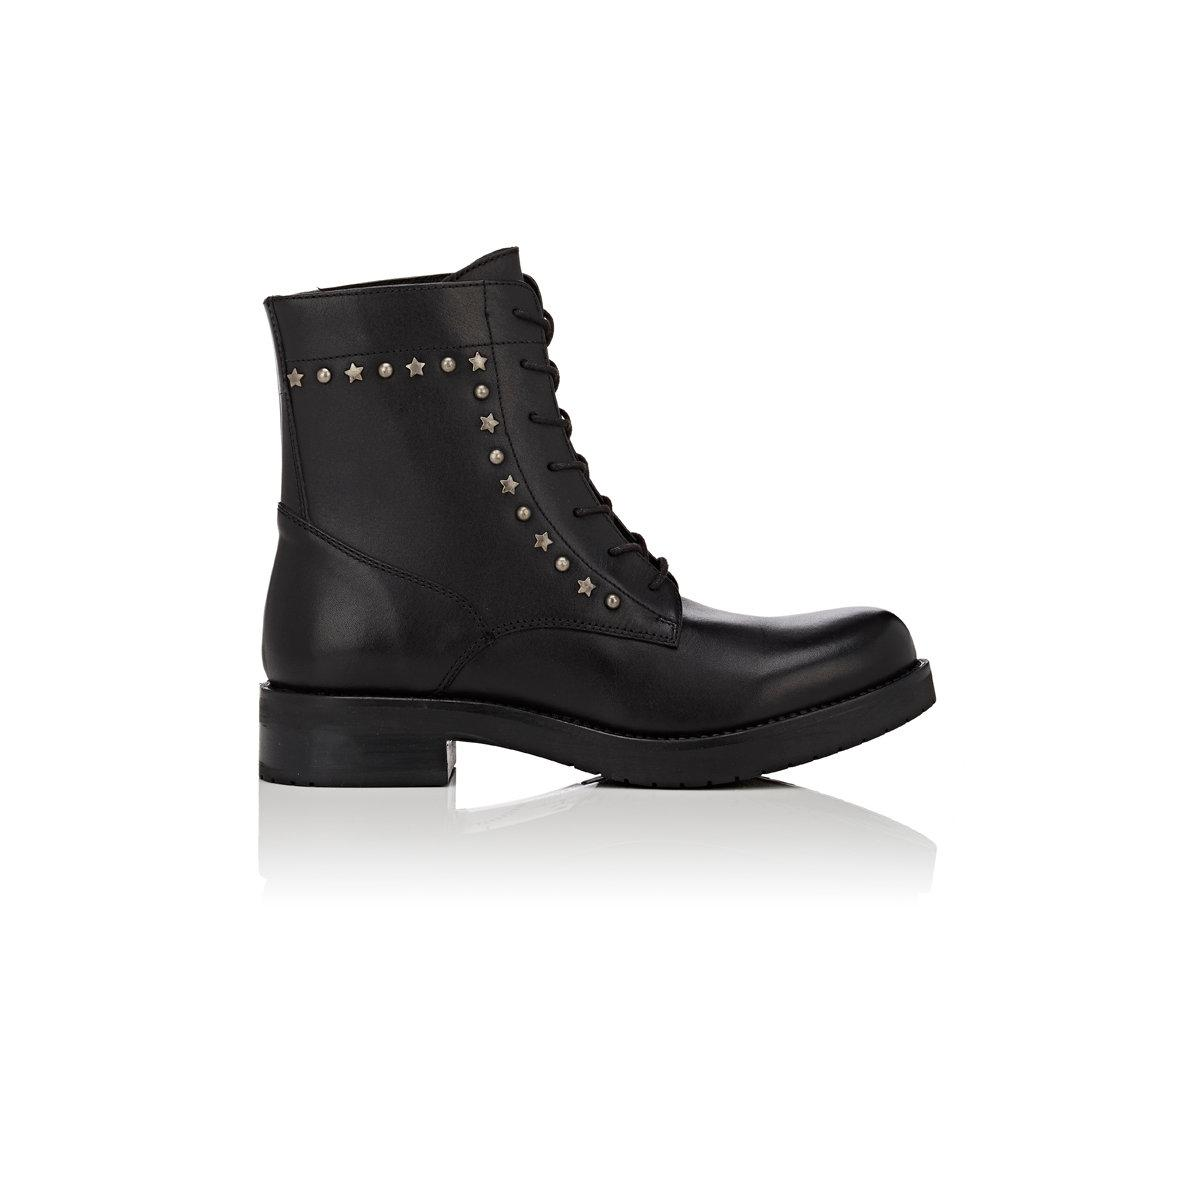 barneys new york studded leather combat boots in black lyst